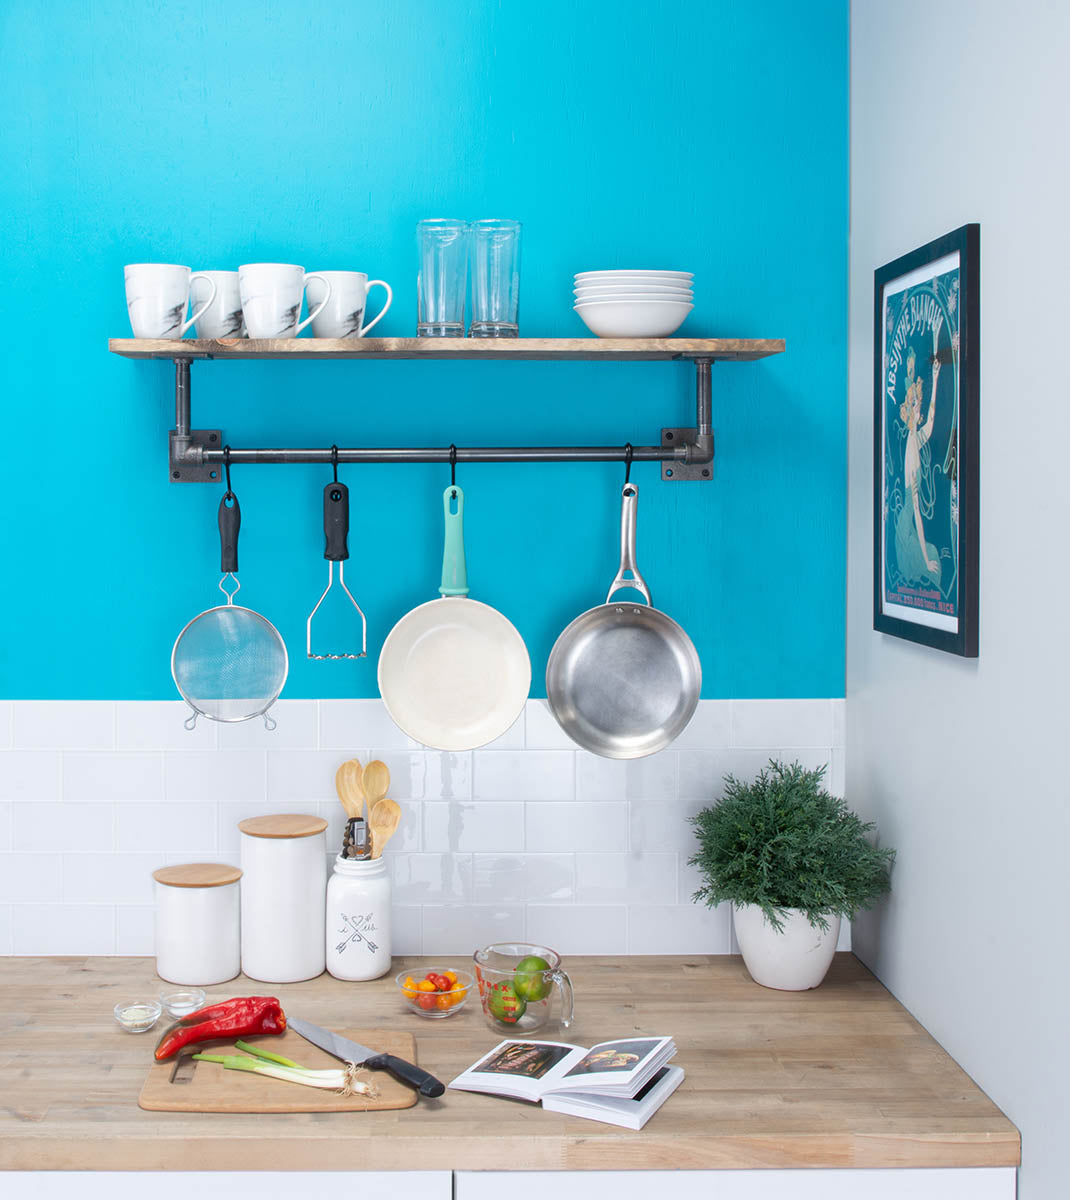 Pipe kitchen shelf and rack